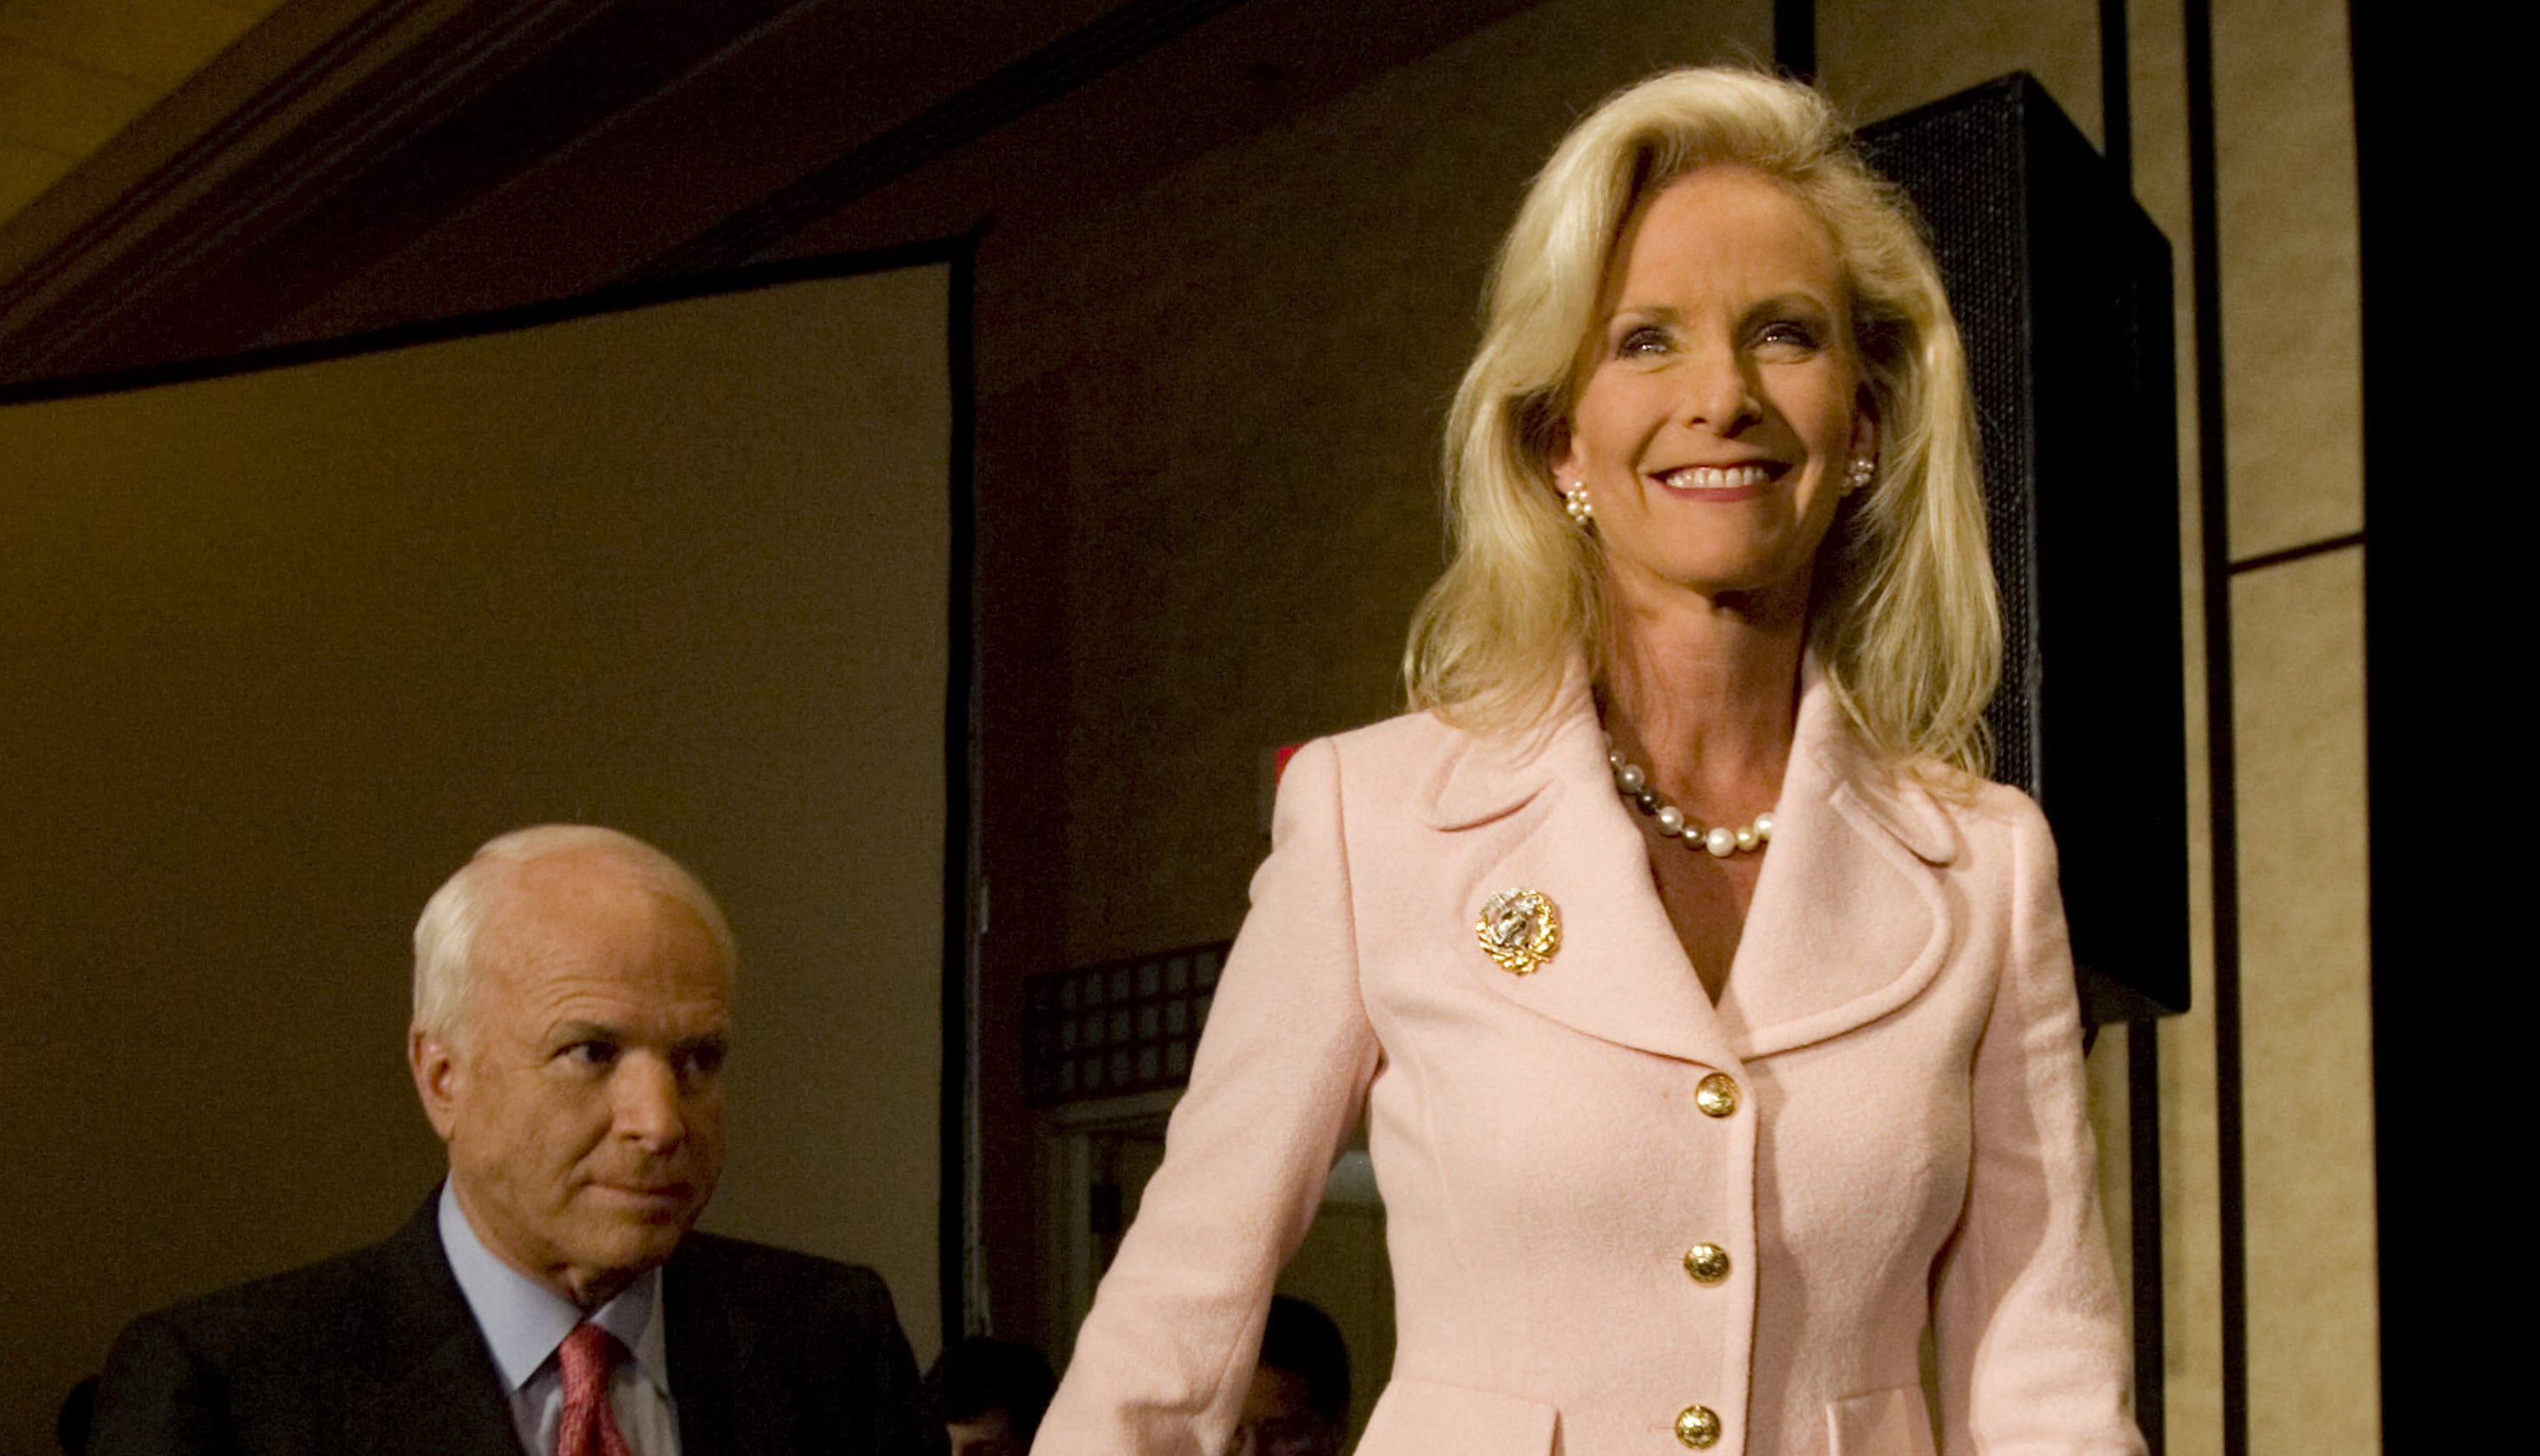 cindy-mccain-beauty-rodeo-pictures-naked-bi-couples